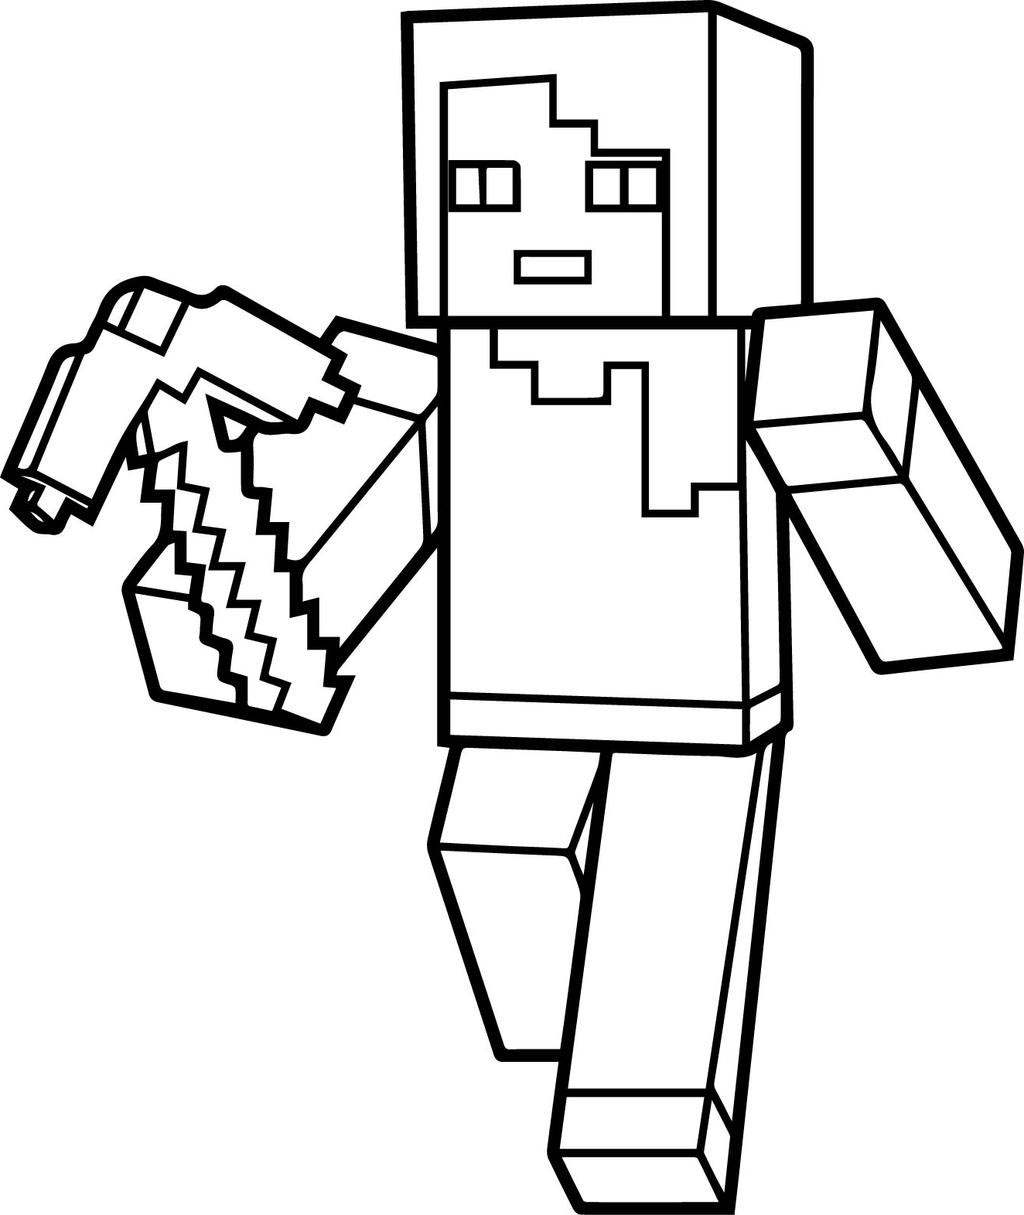 Minecraft Coloring Pages Juve Cenitdelacabrera Line Drawing